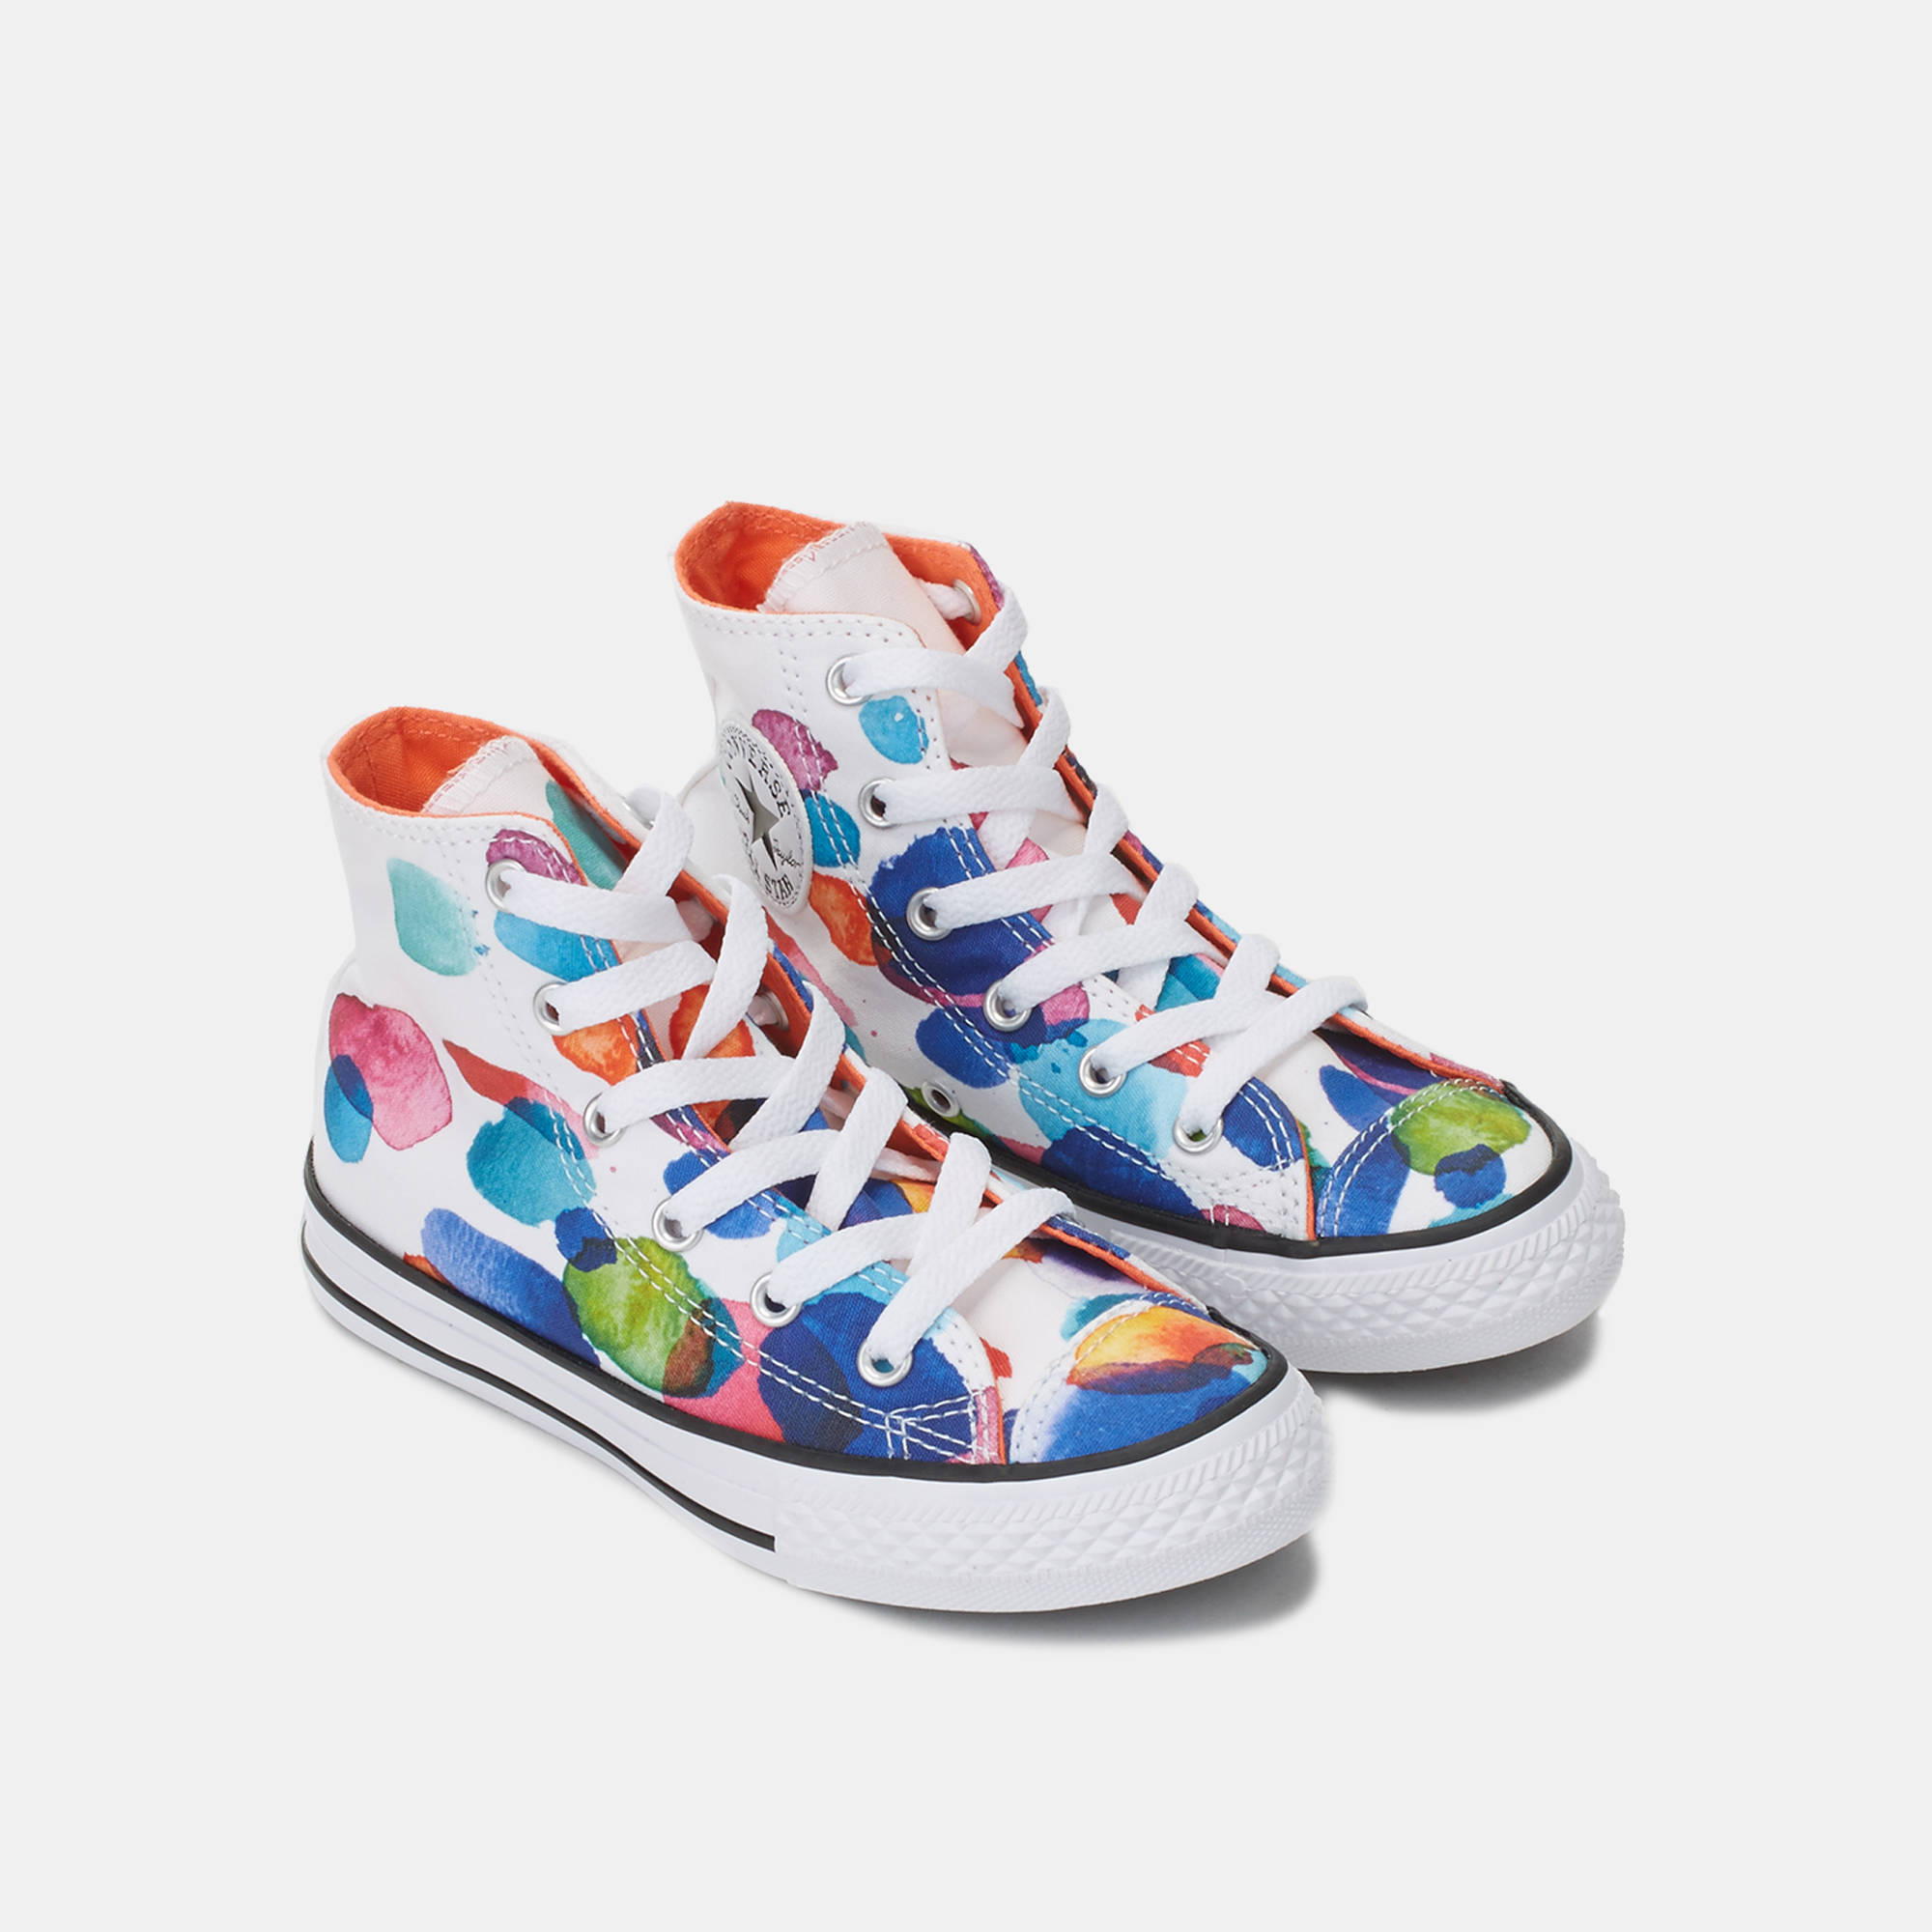 Converse for kids ... 547713 converse kidsu0027 chuck taylor all star floral petals shoe, ... MLGSUAN